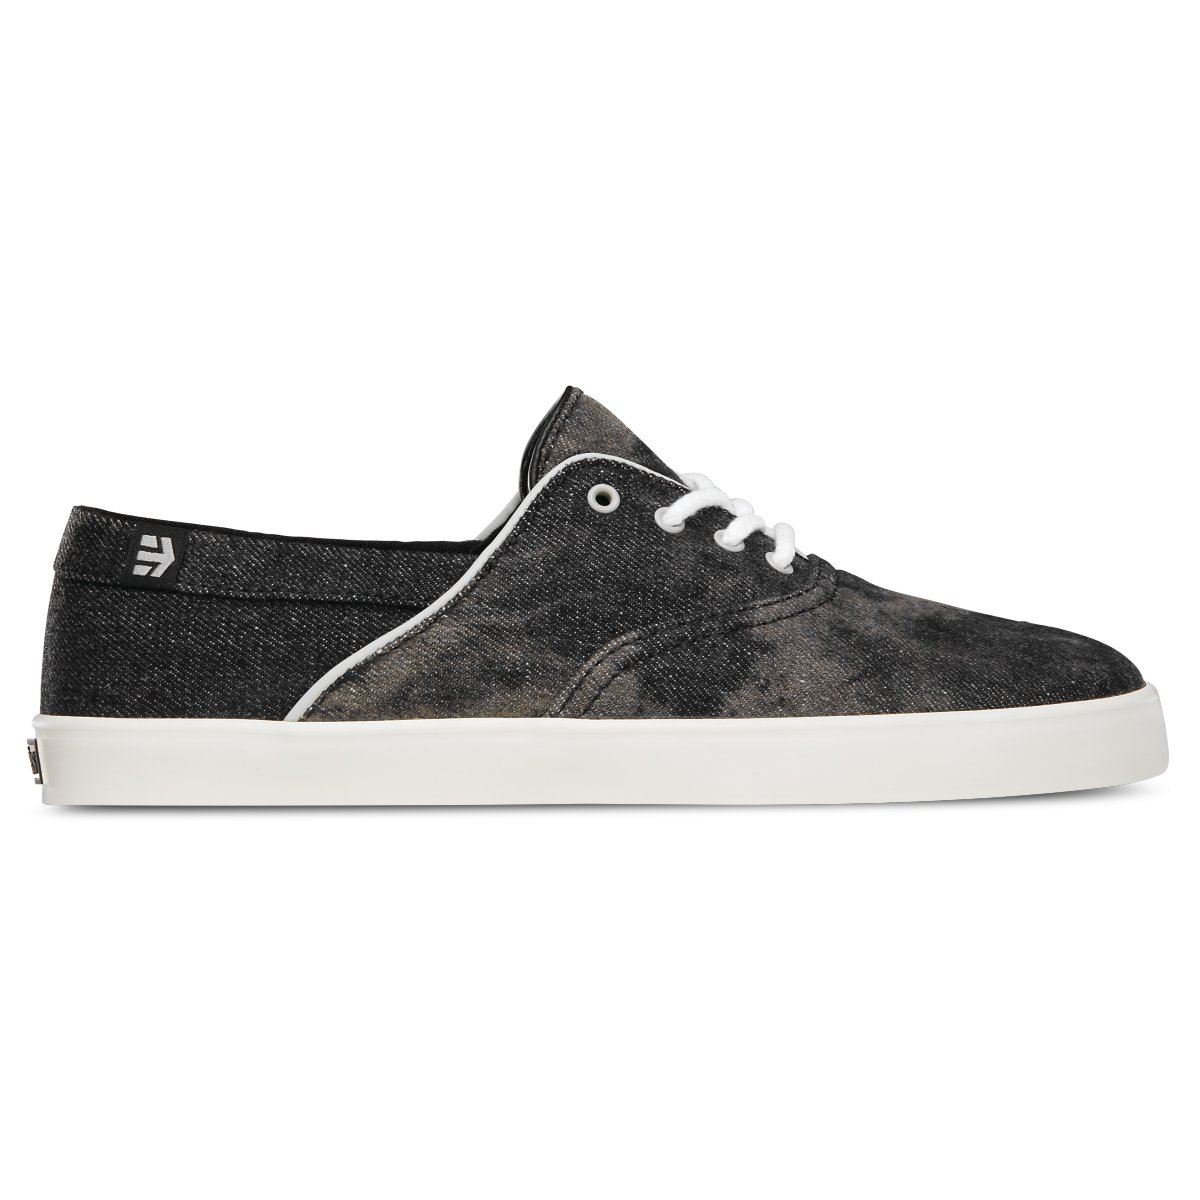 Etnies Women's Corby W'S Skateboard Shoe, Black/Grey/White, 9.5 M US by Etnies